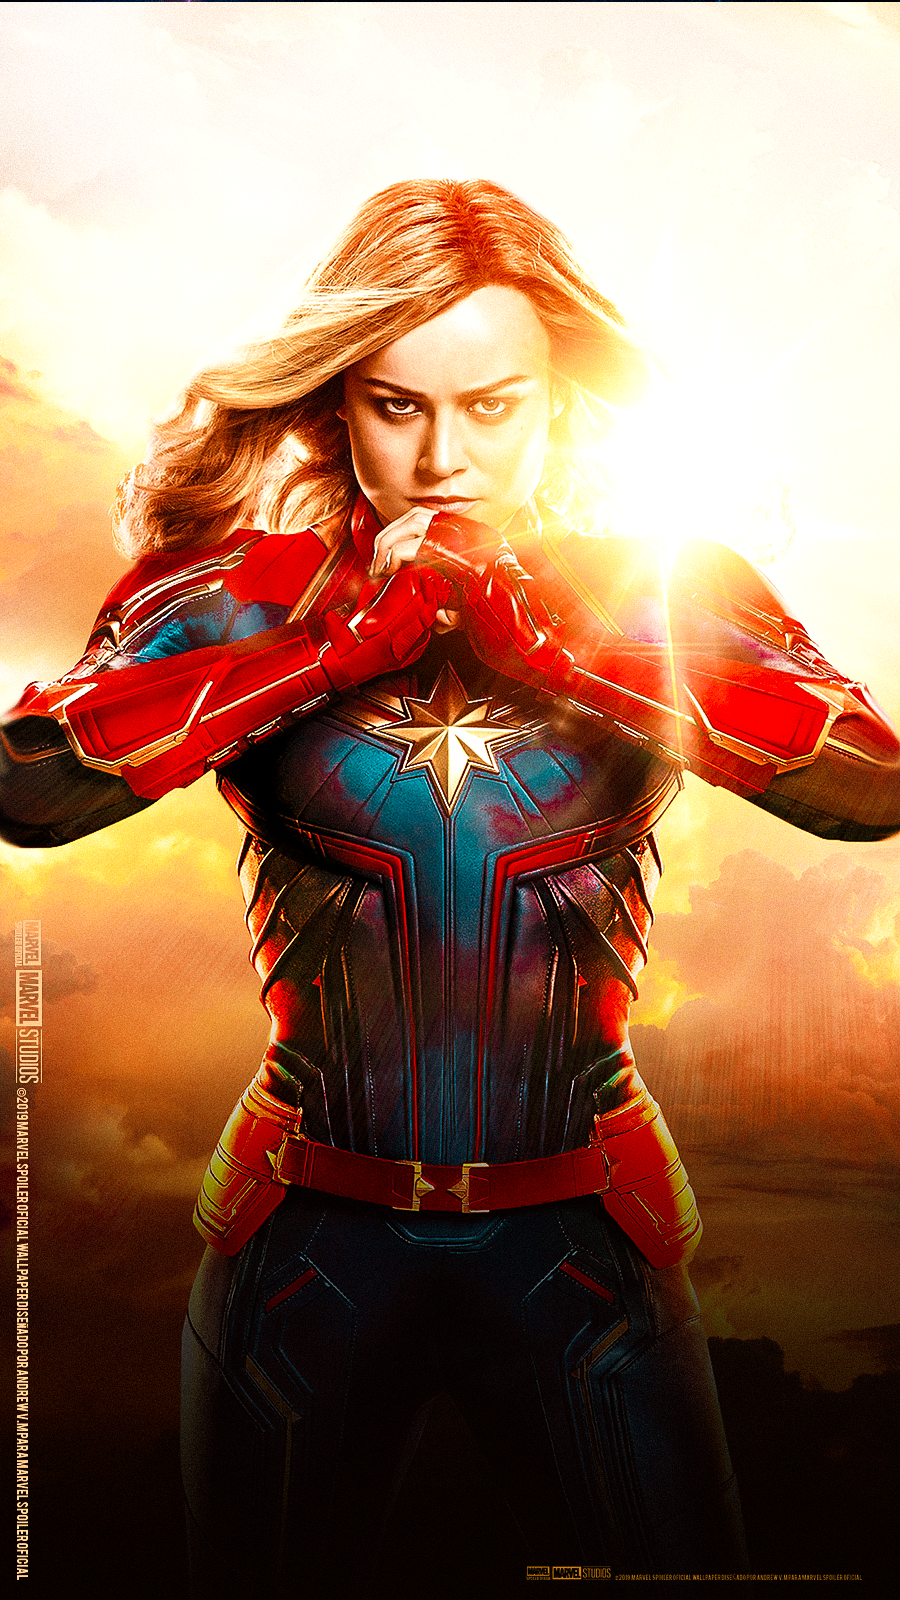 Capitana Marvel Pelicula Completa En Español Latino Online In 2021 Captain Marvel Captain Marvel Carol Danvers Marvel Superheroes